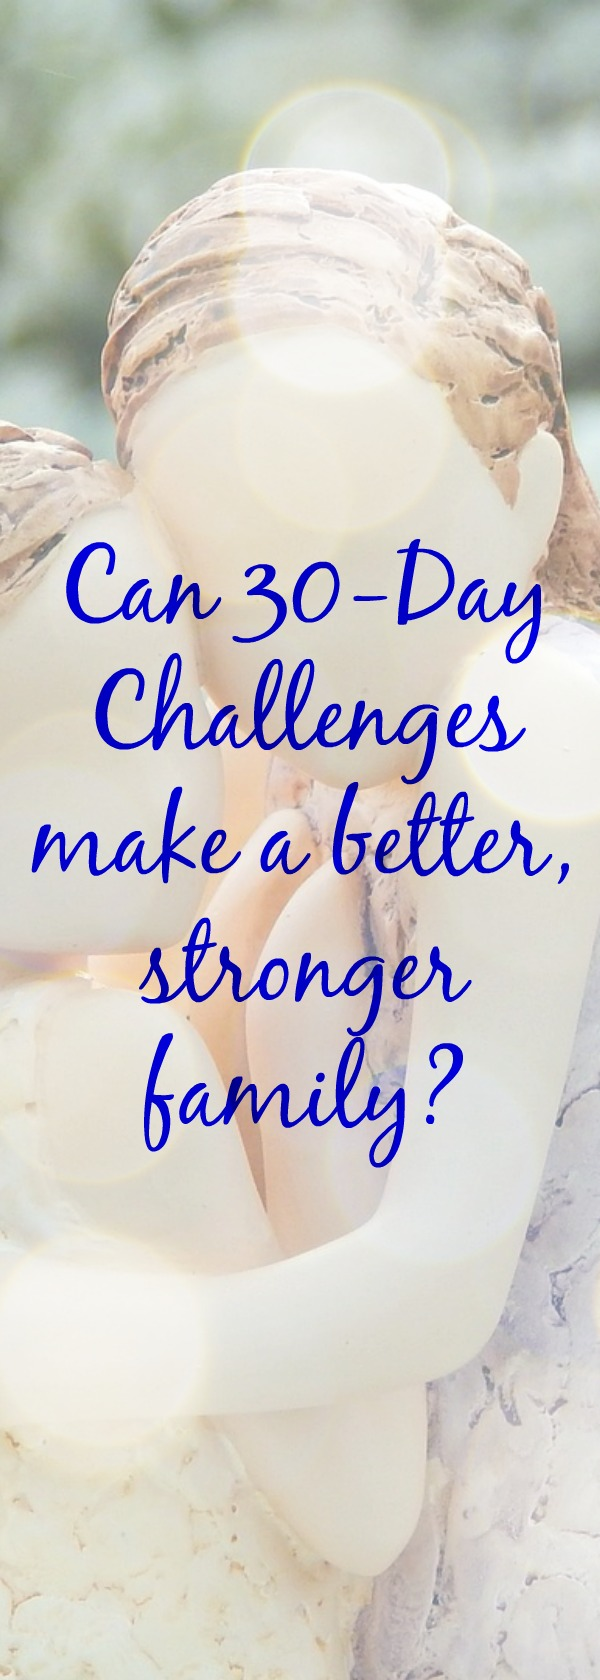 30-Day Challenge - can they make life better?